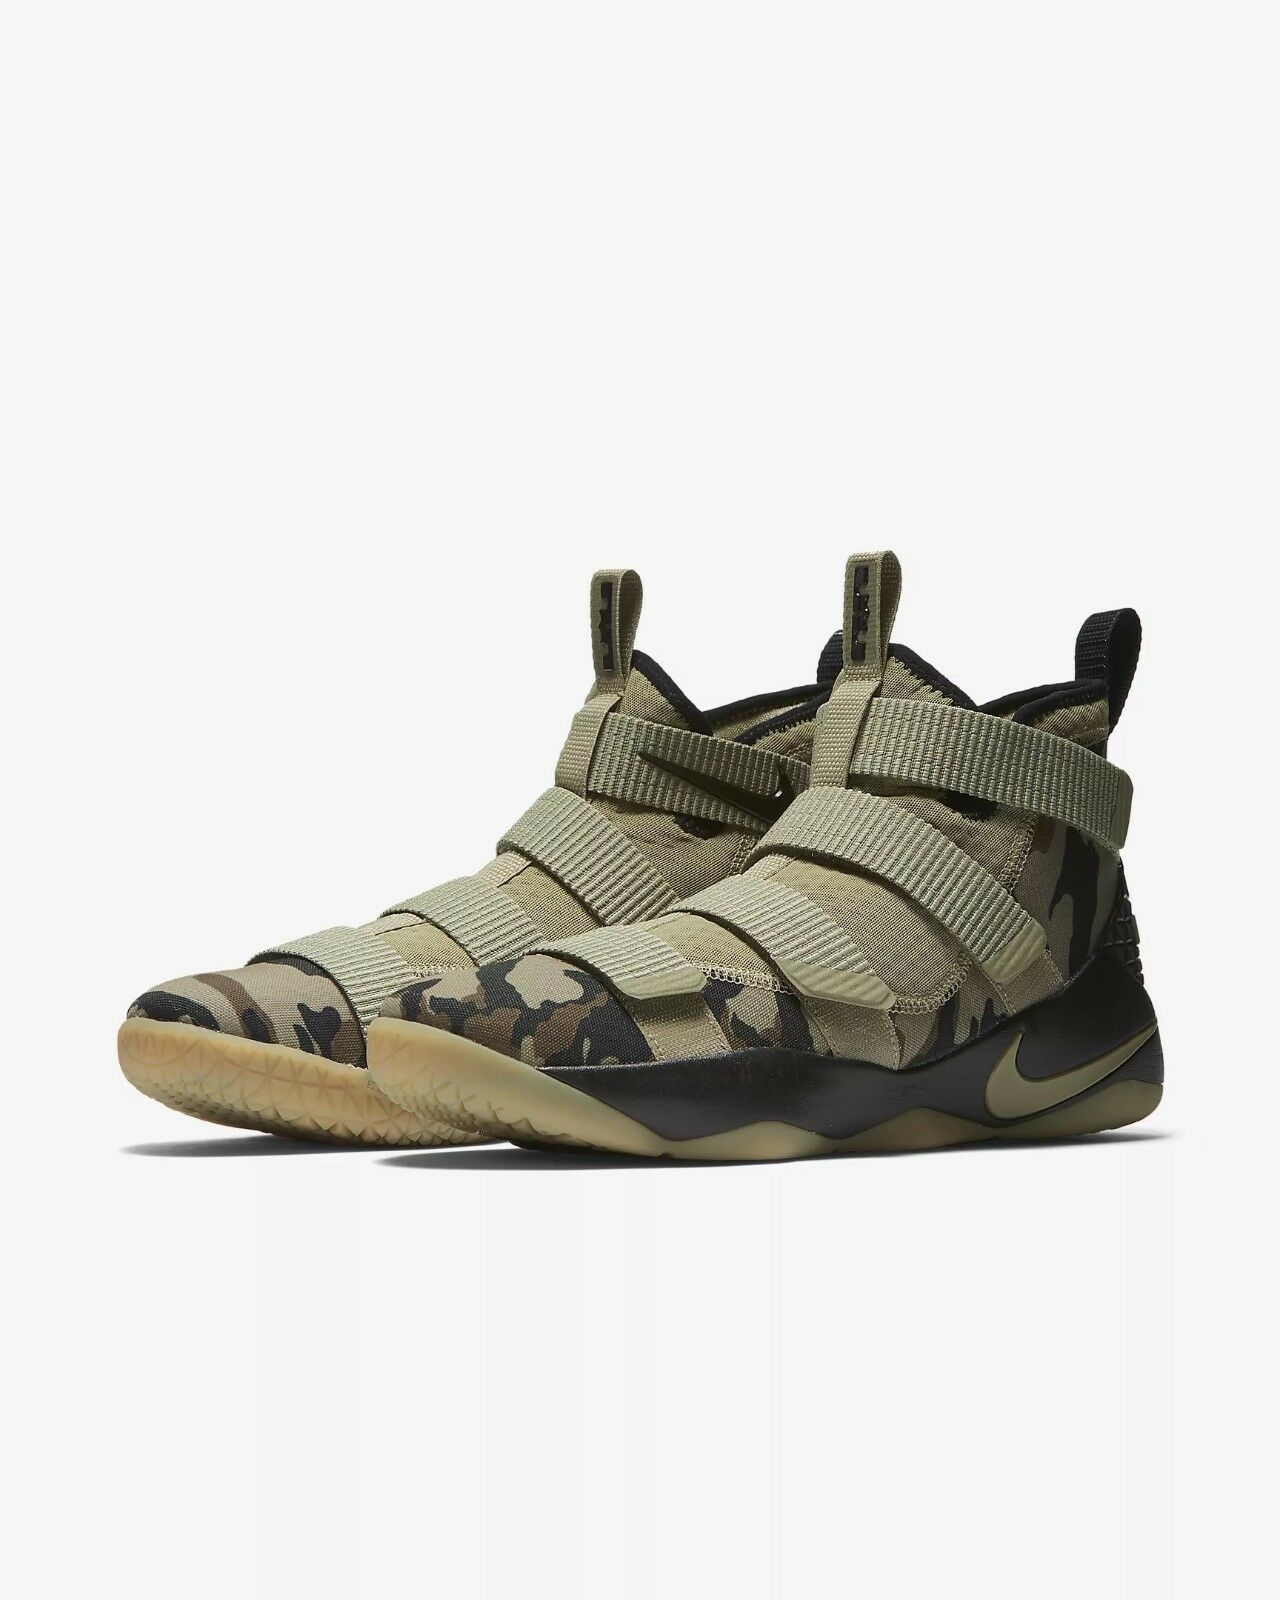 Men's Nike Lebron Soldier XI Basketball shoes Olive Hazel-Sequoia 897644-200 NIB